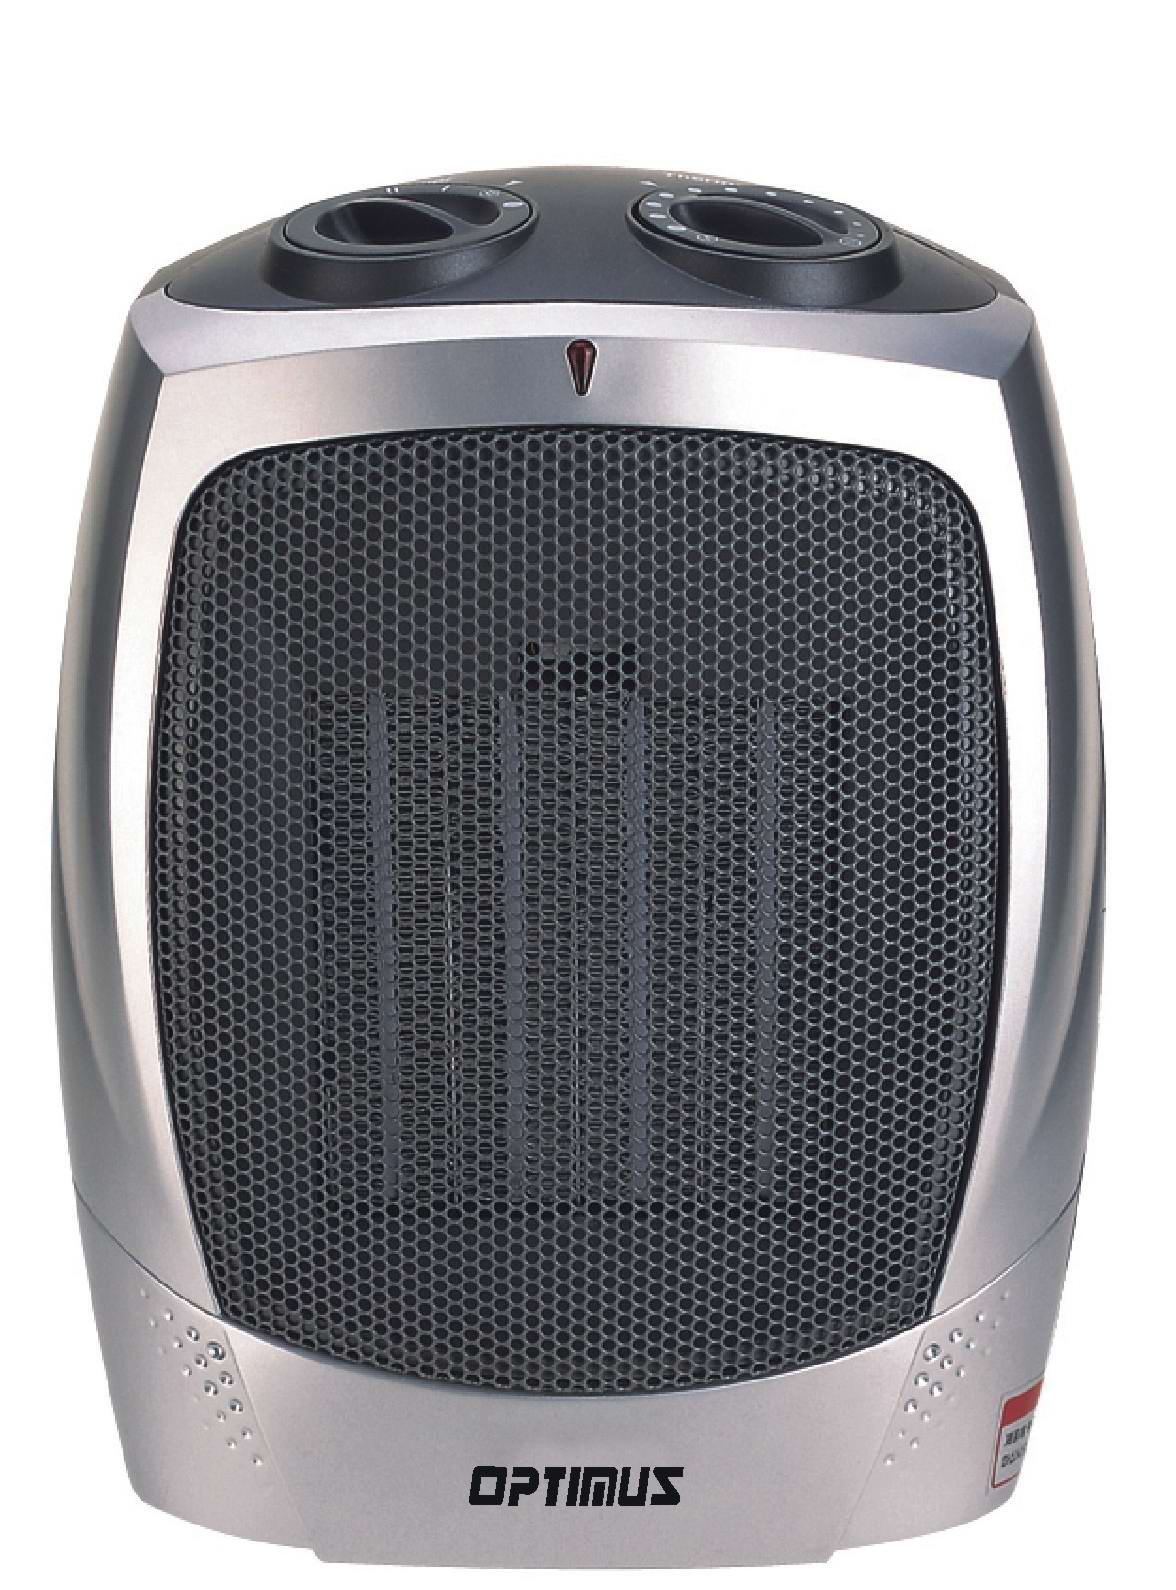 OPTIMUS H7004 HEATER CERAMIC WITH THERMOSTAT PORTABLE